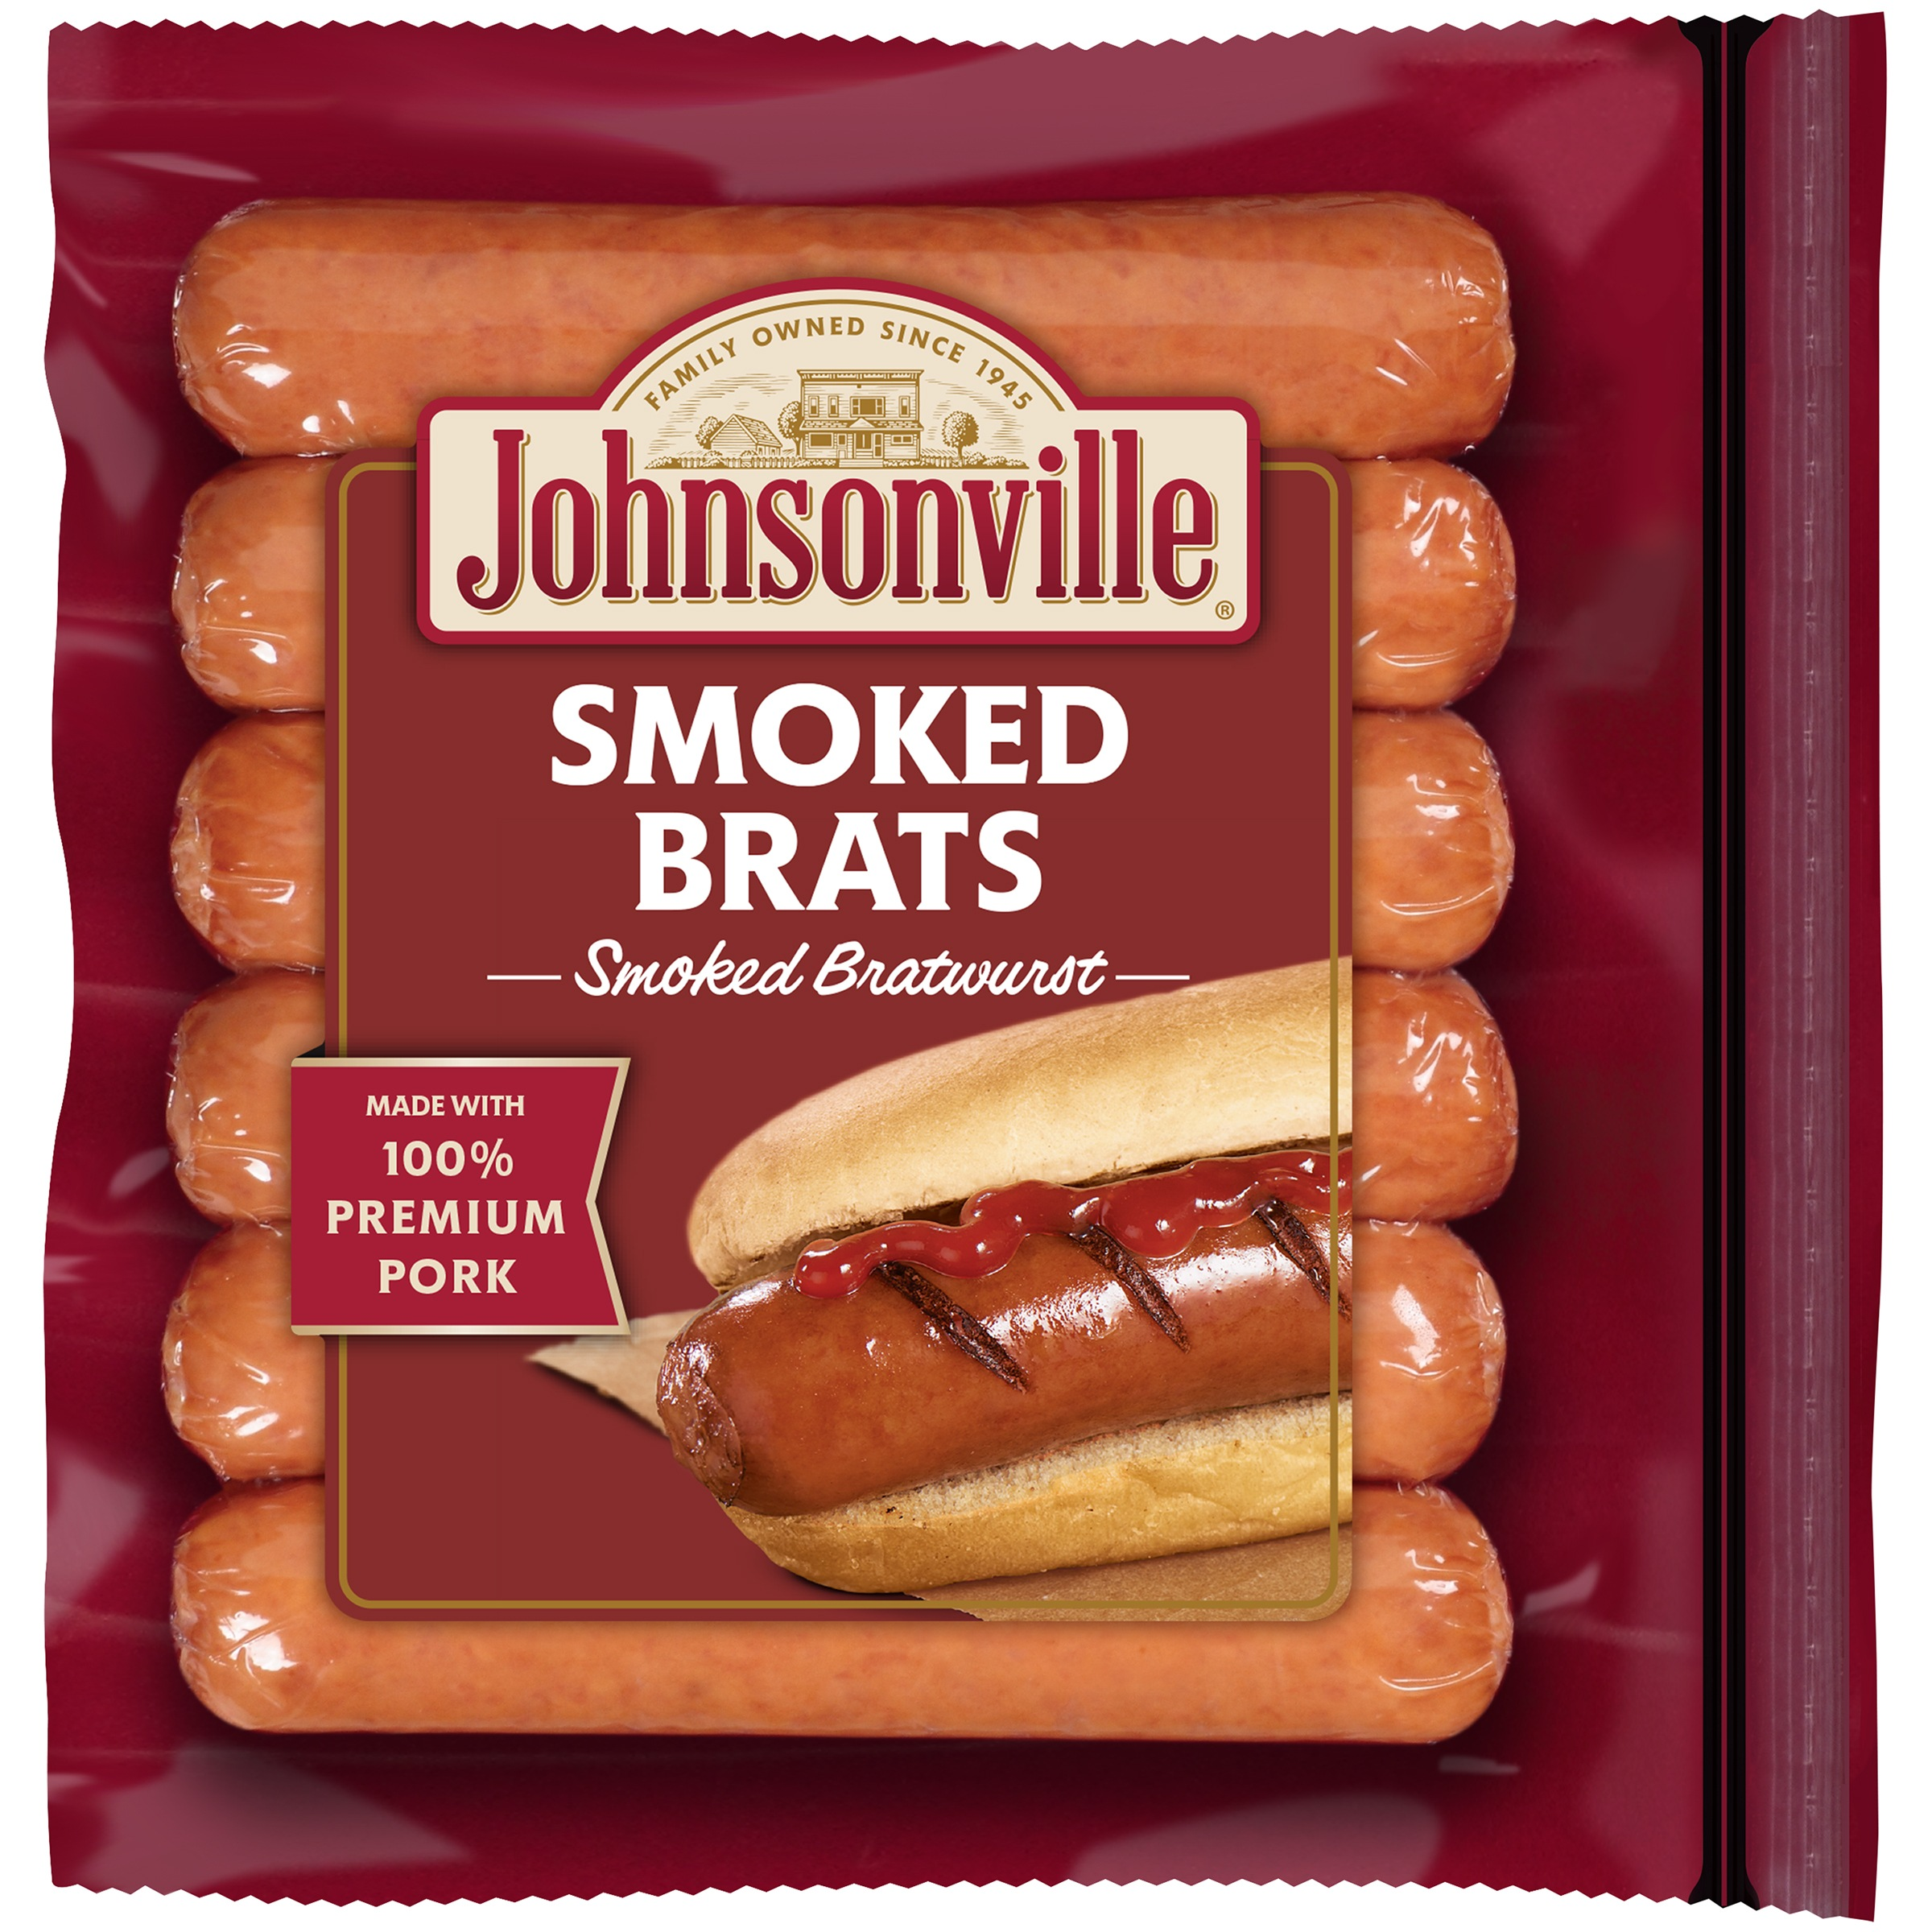 Johnsonville Smoked Brats 6 Count, 14 oz